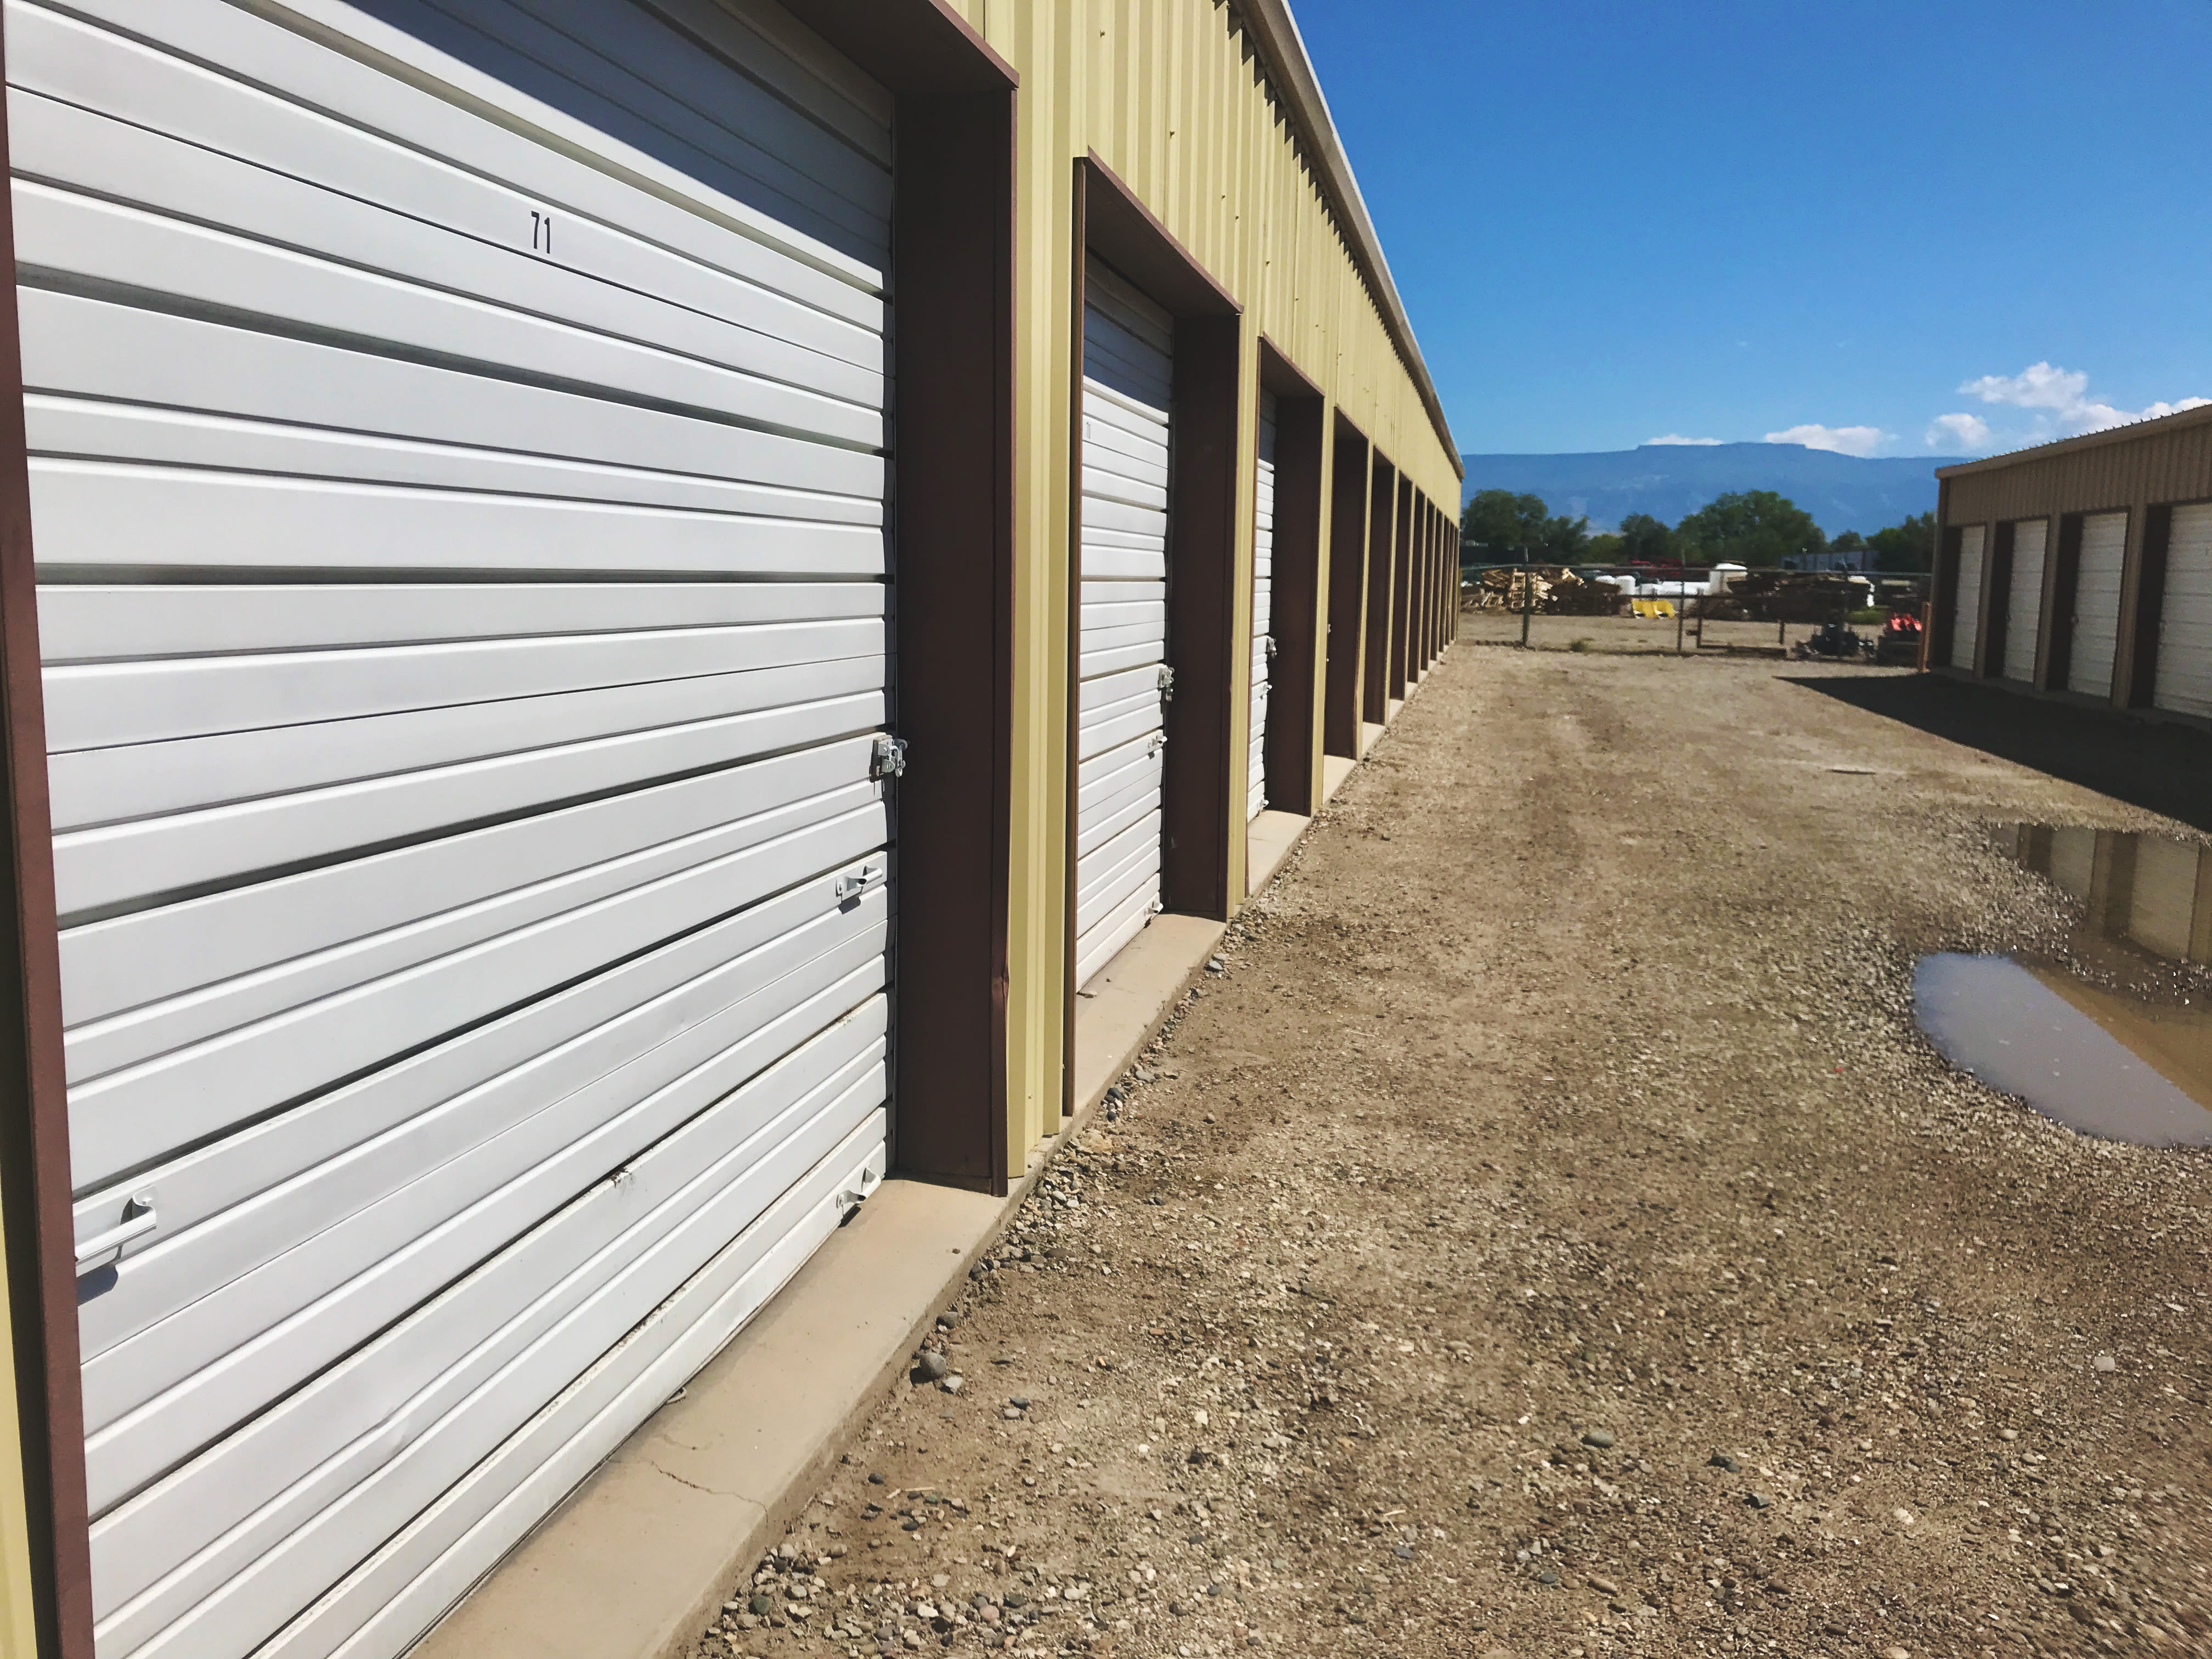 A row of outdoor units with green doors at 603 Storage - Dudley in Raymond, New Hampshire